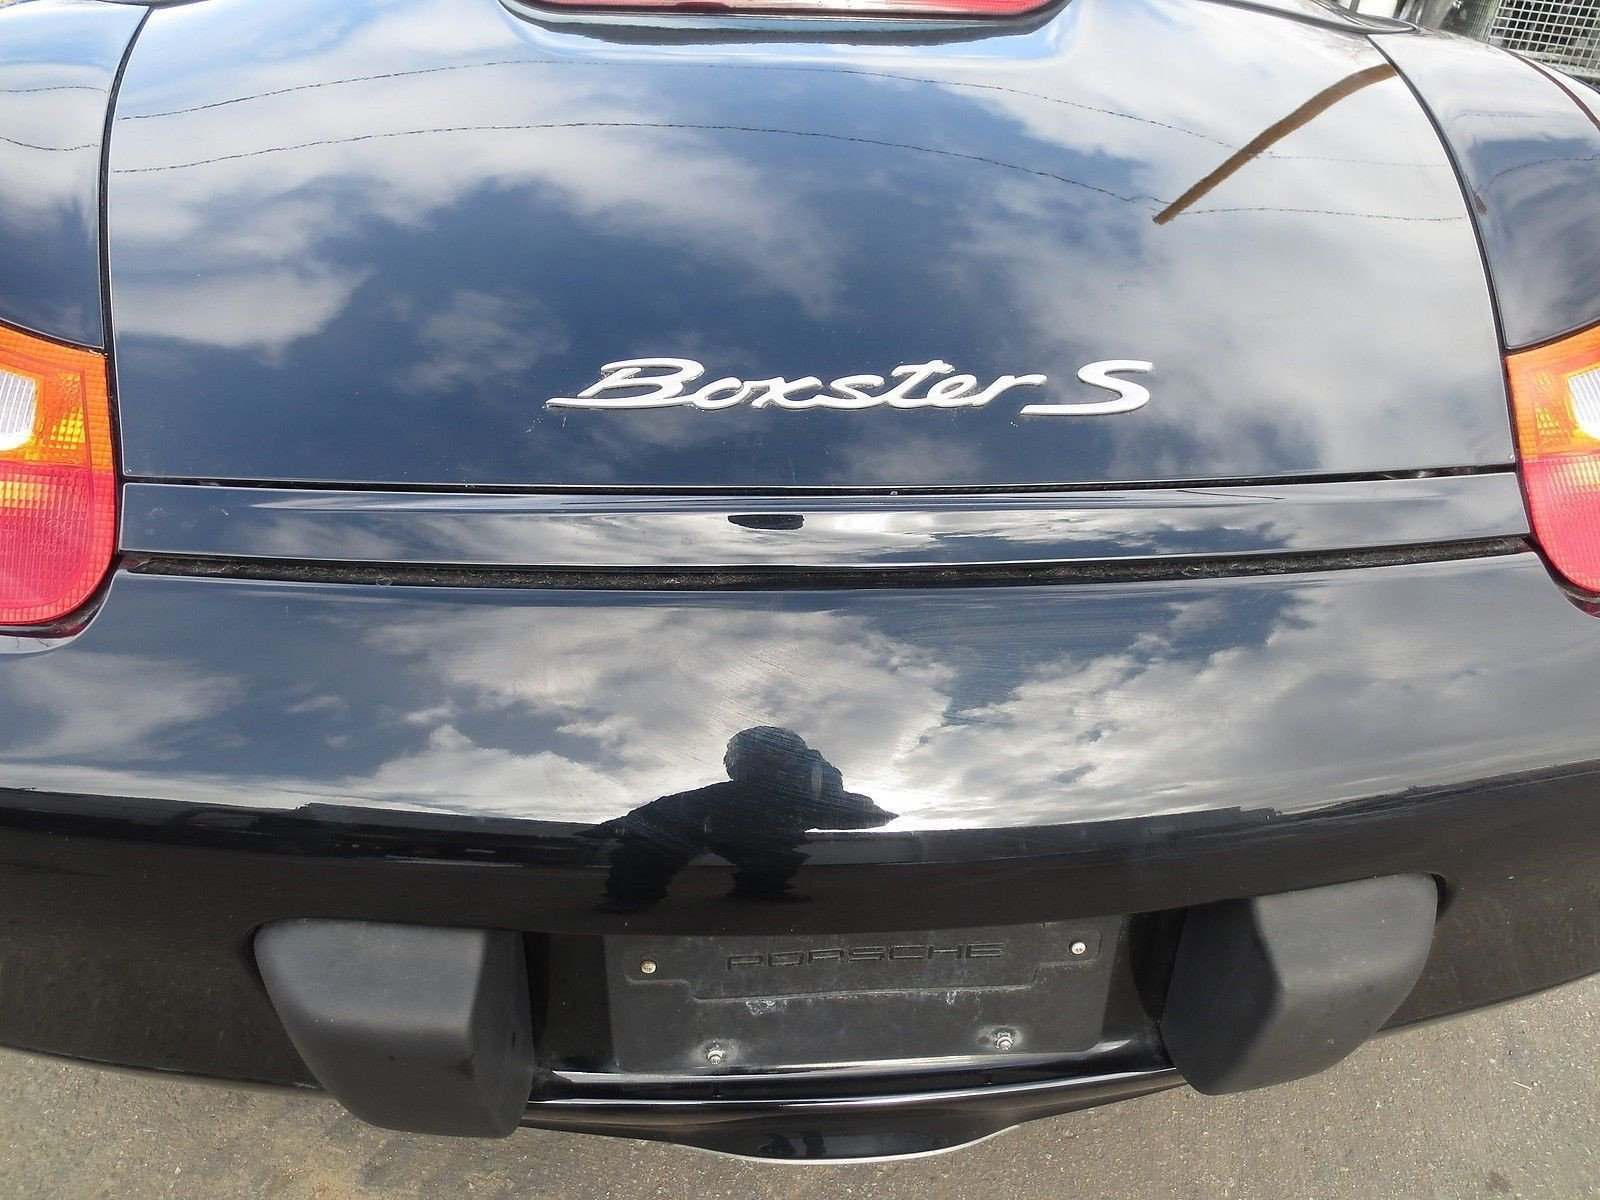 2000 BOXSTER S 986 Porsche Parting Out car parts 64,895